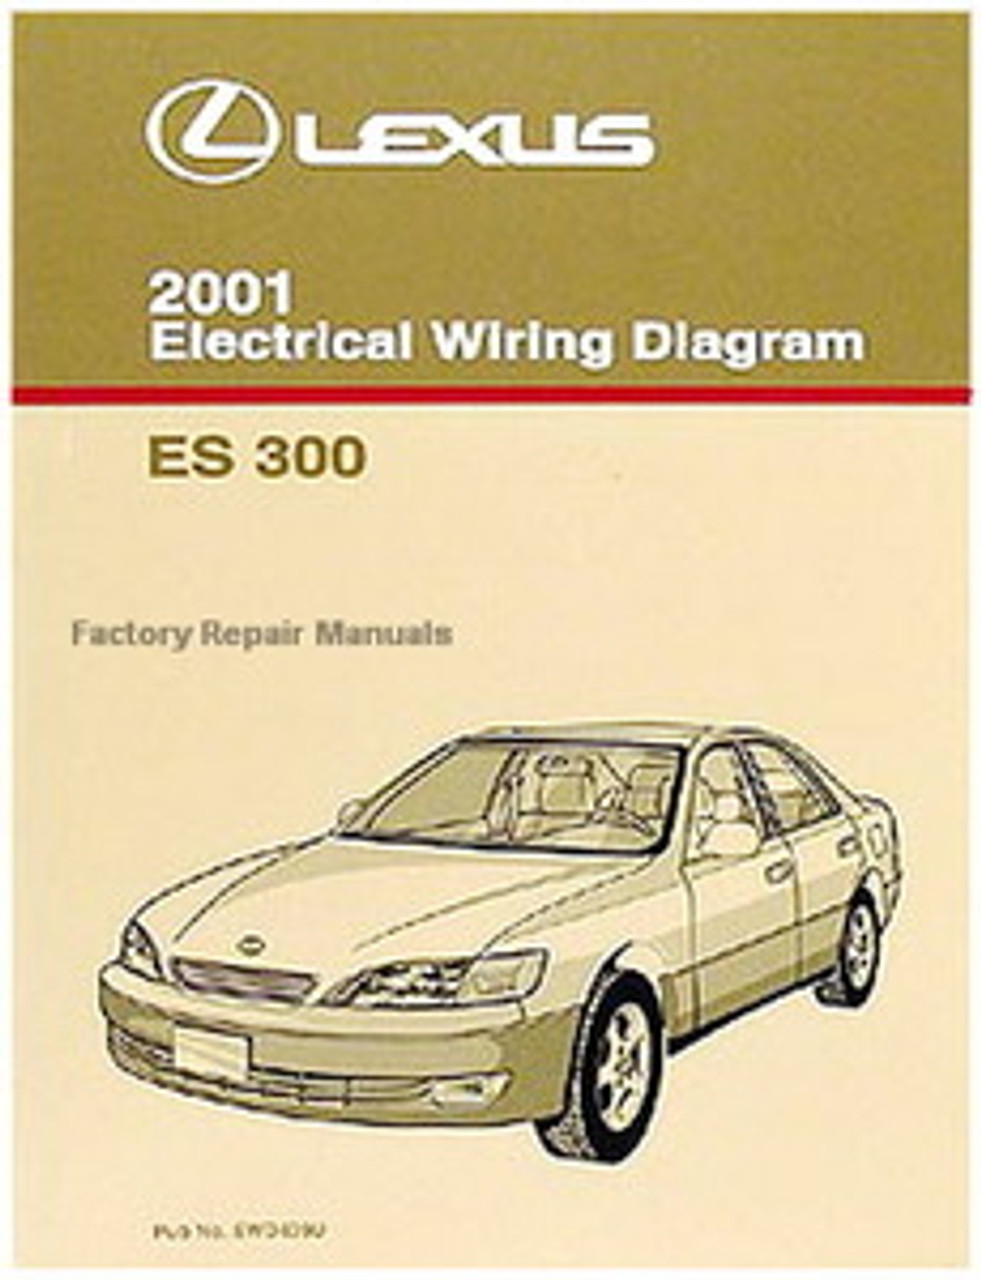 2001 Lexus Es300 Electrical Wiring Diagrams